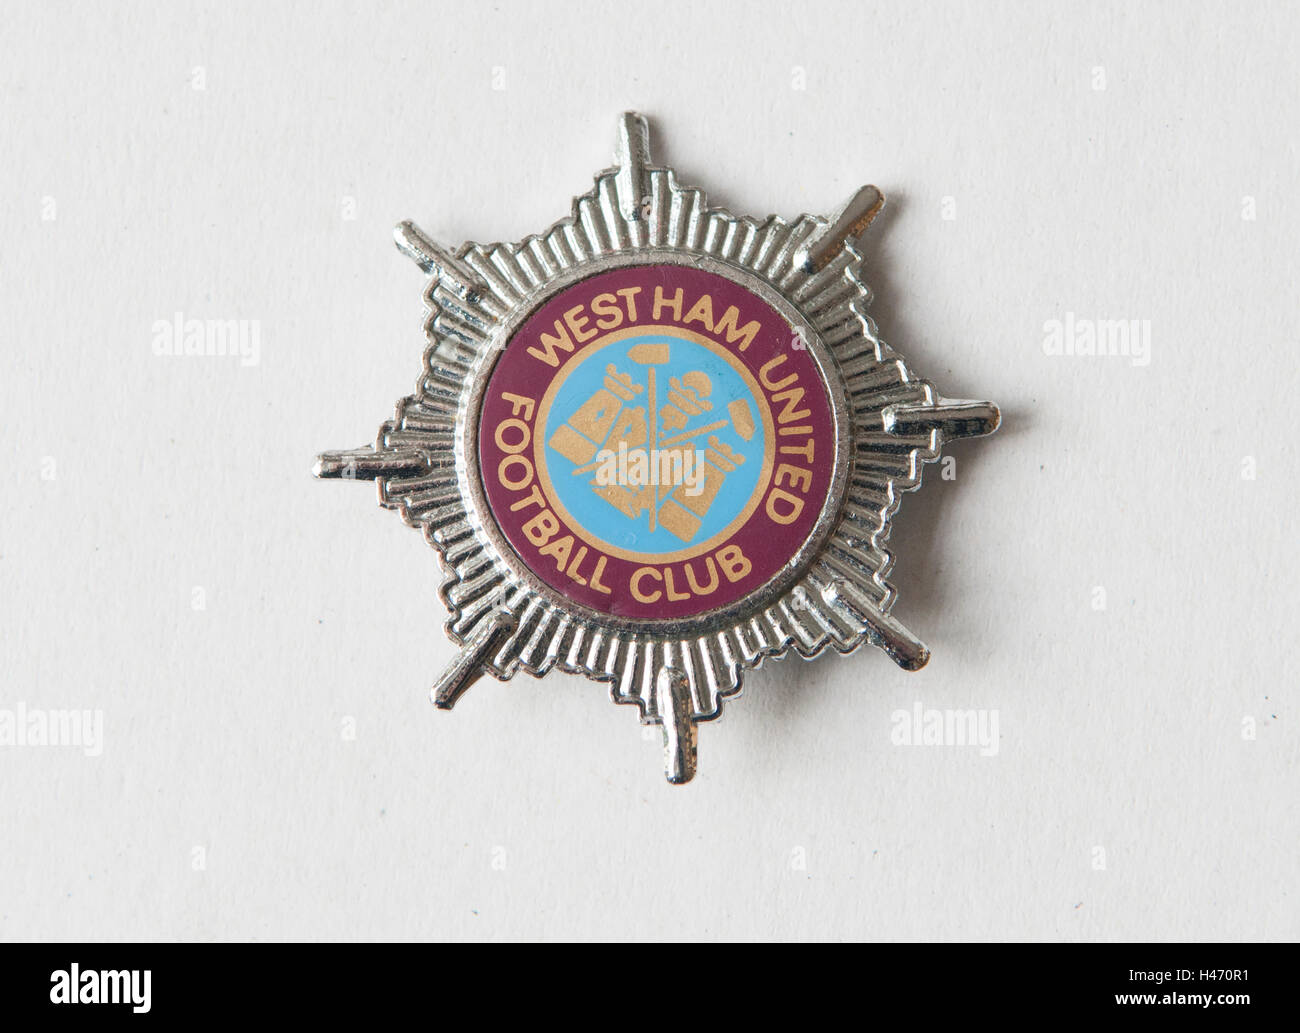 Westham United Football Club de badge HOMER SYKES Photo Stock